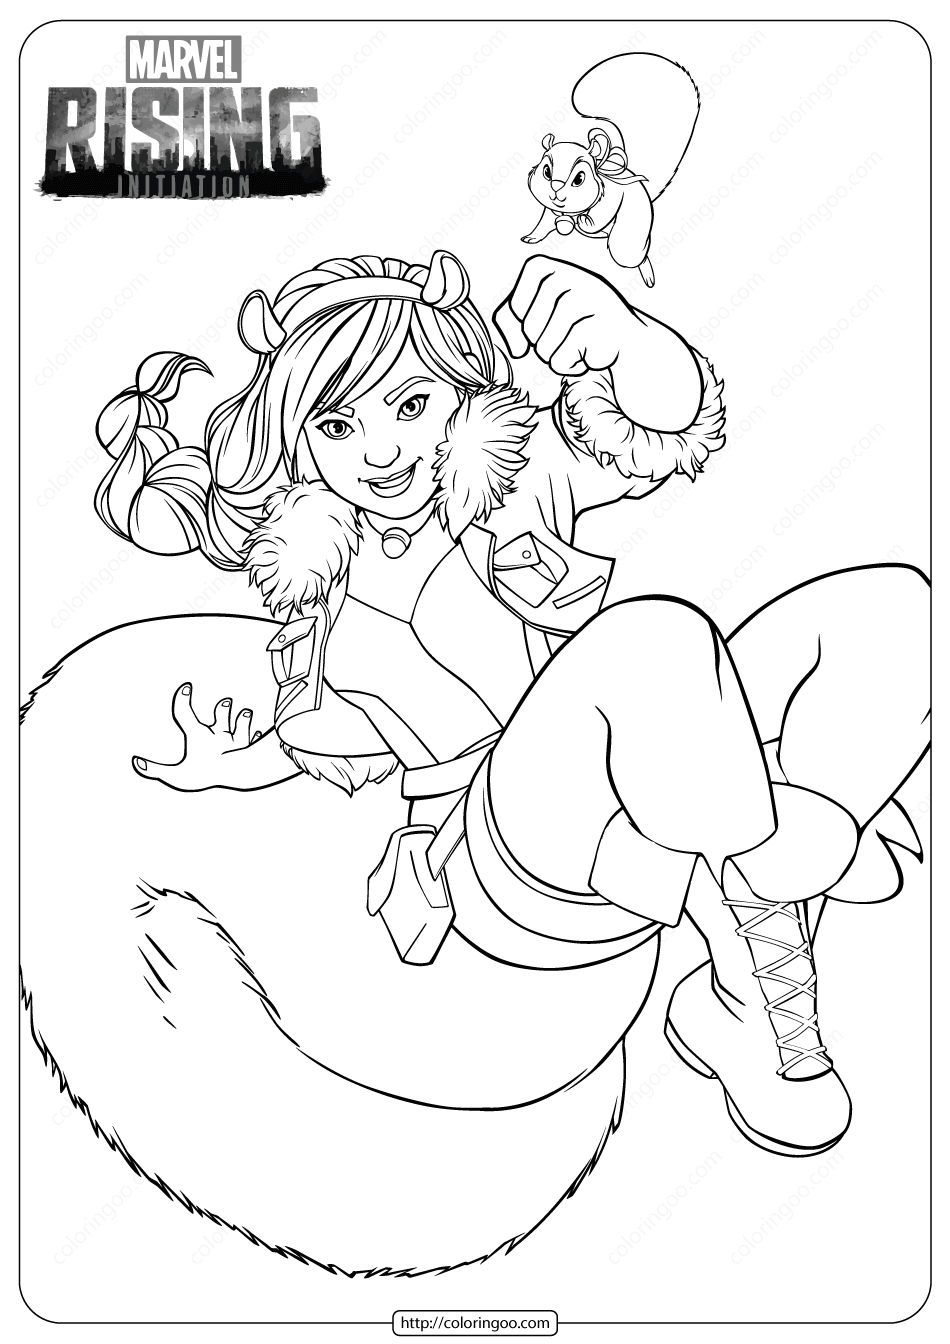 Marvel Rising Squirrel Girl Coloring Pages